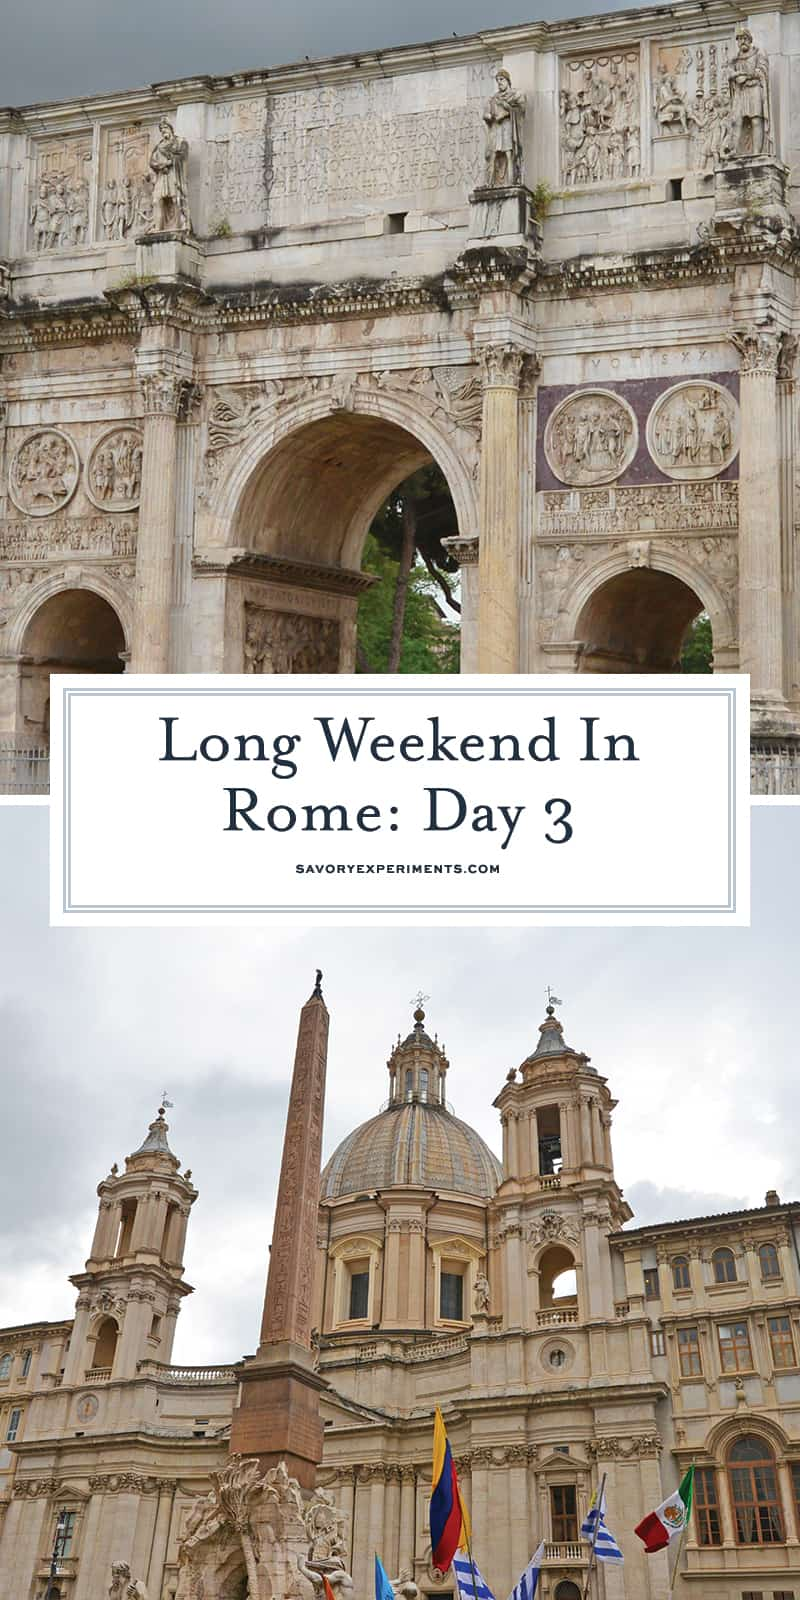 Day 3 of your Rome walk tour covers the Colosseum, Roman Forum, Palatine Hill, Arch of Constantine. Walk with the gladiators! #romewalkingtour #romeitaly www.savoryexperiments.com